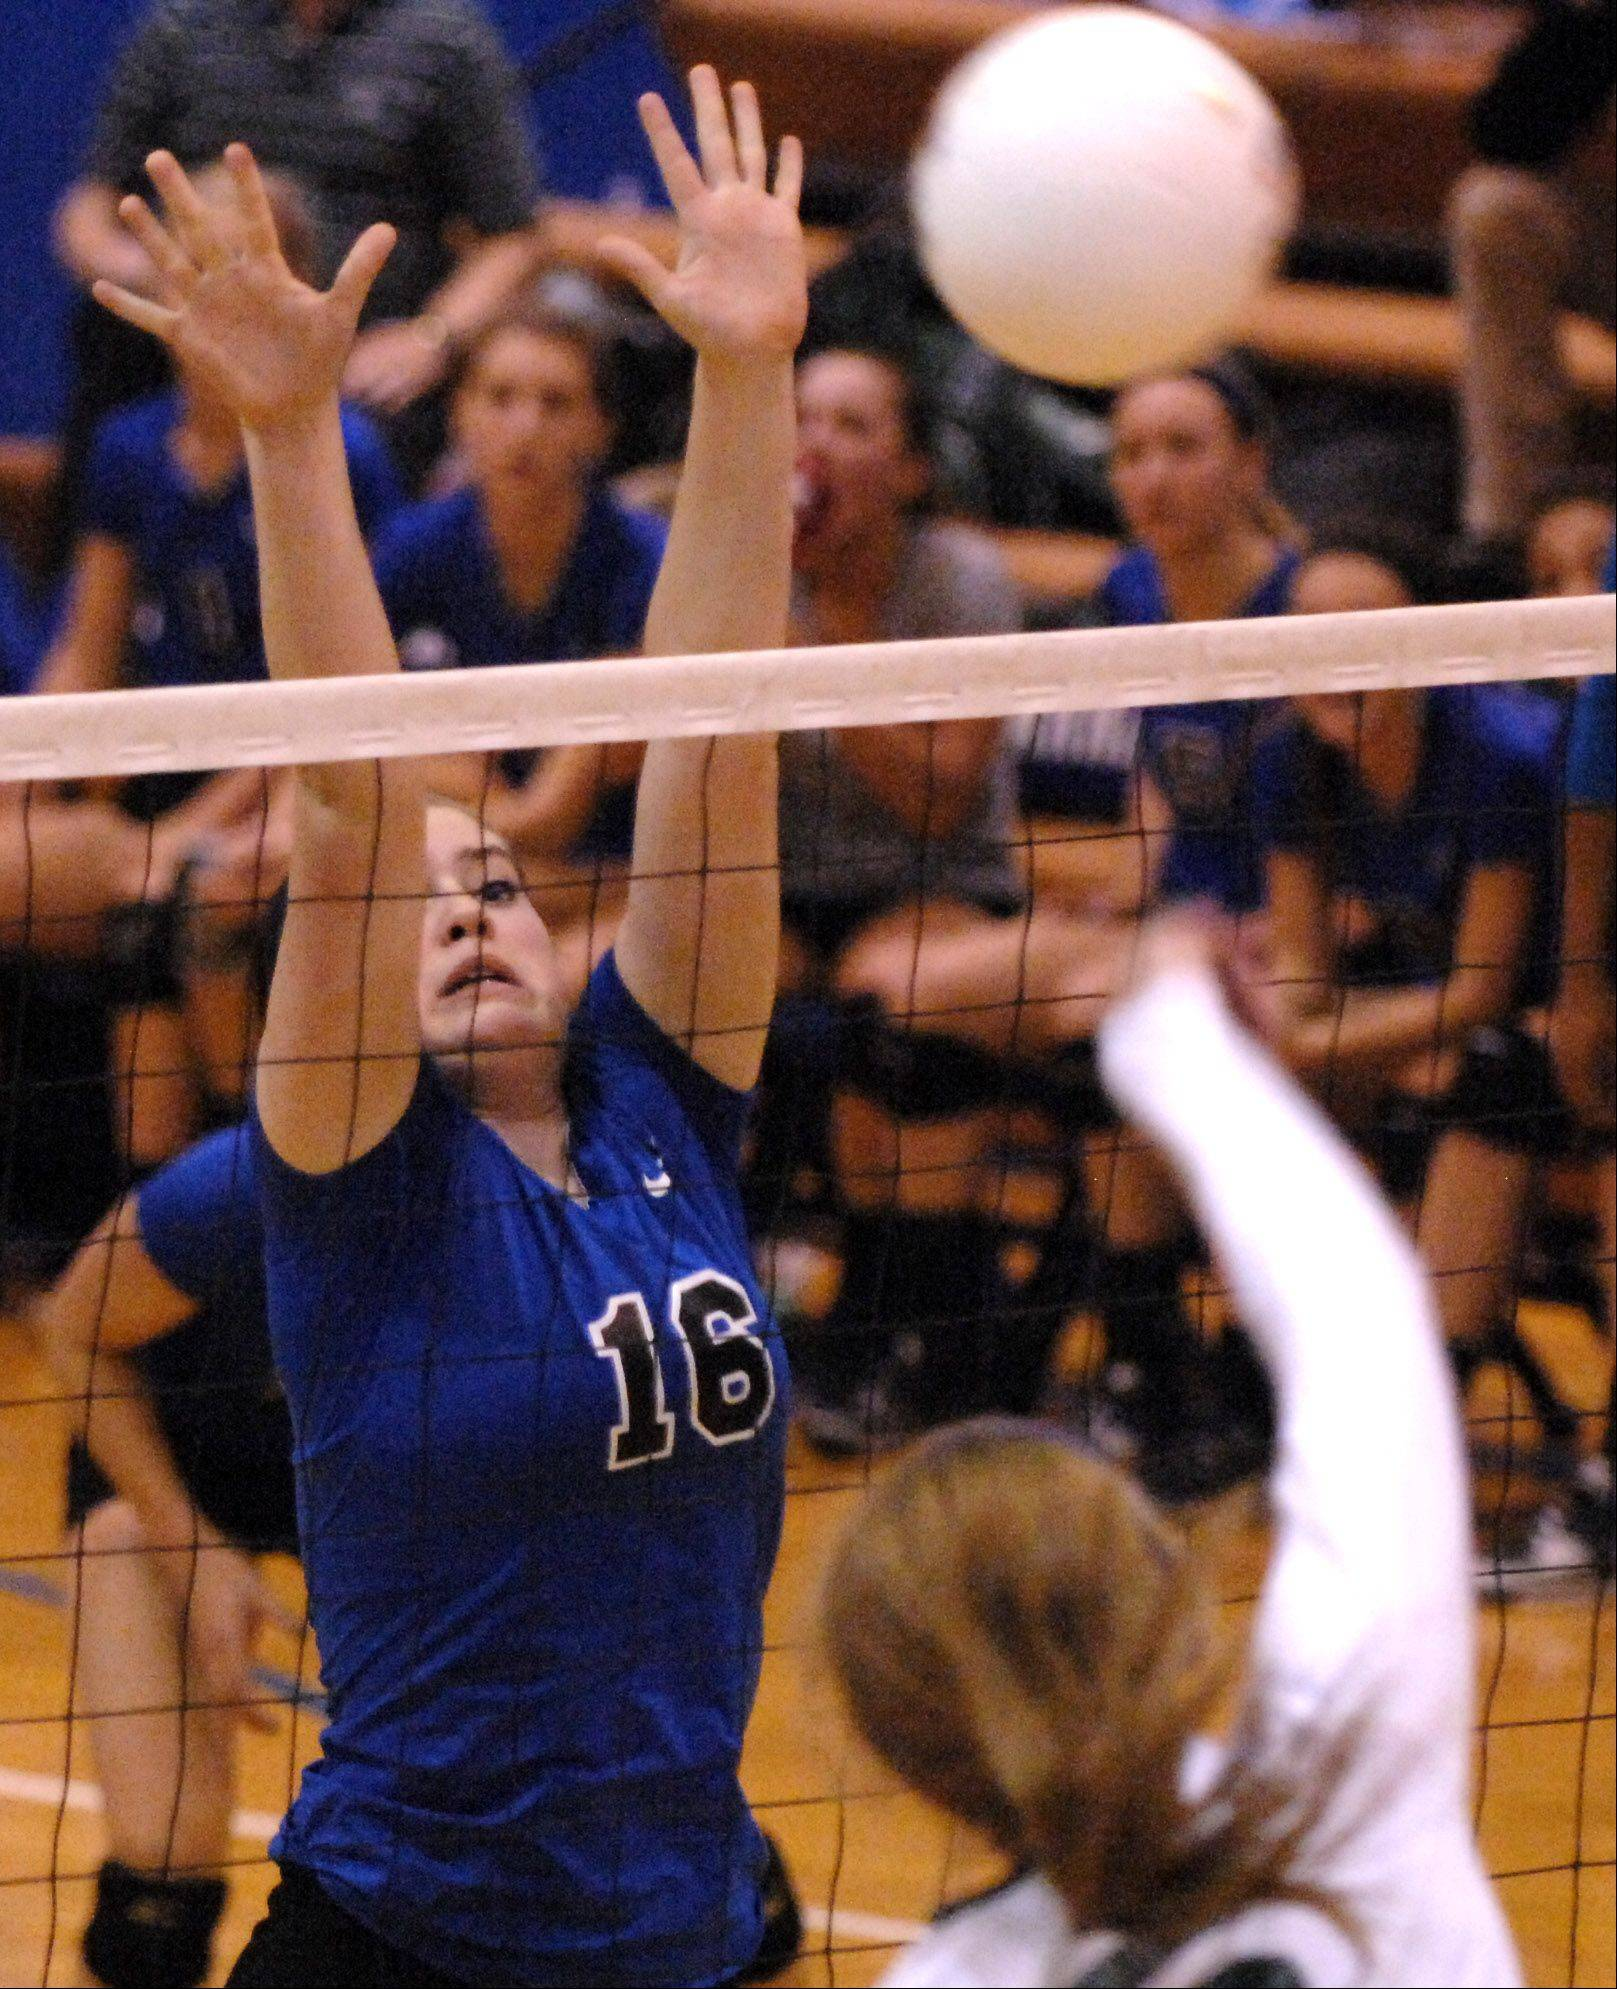 St. Charles North's Corrinne Sullivan goes up for a block against Glenbard West during Tuesday's sectional semifinals at Larkin High School in Elgin.